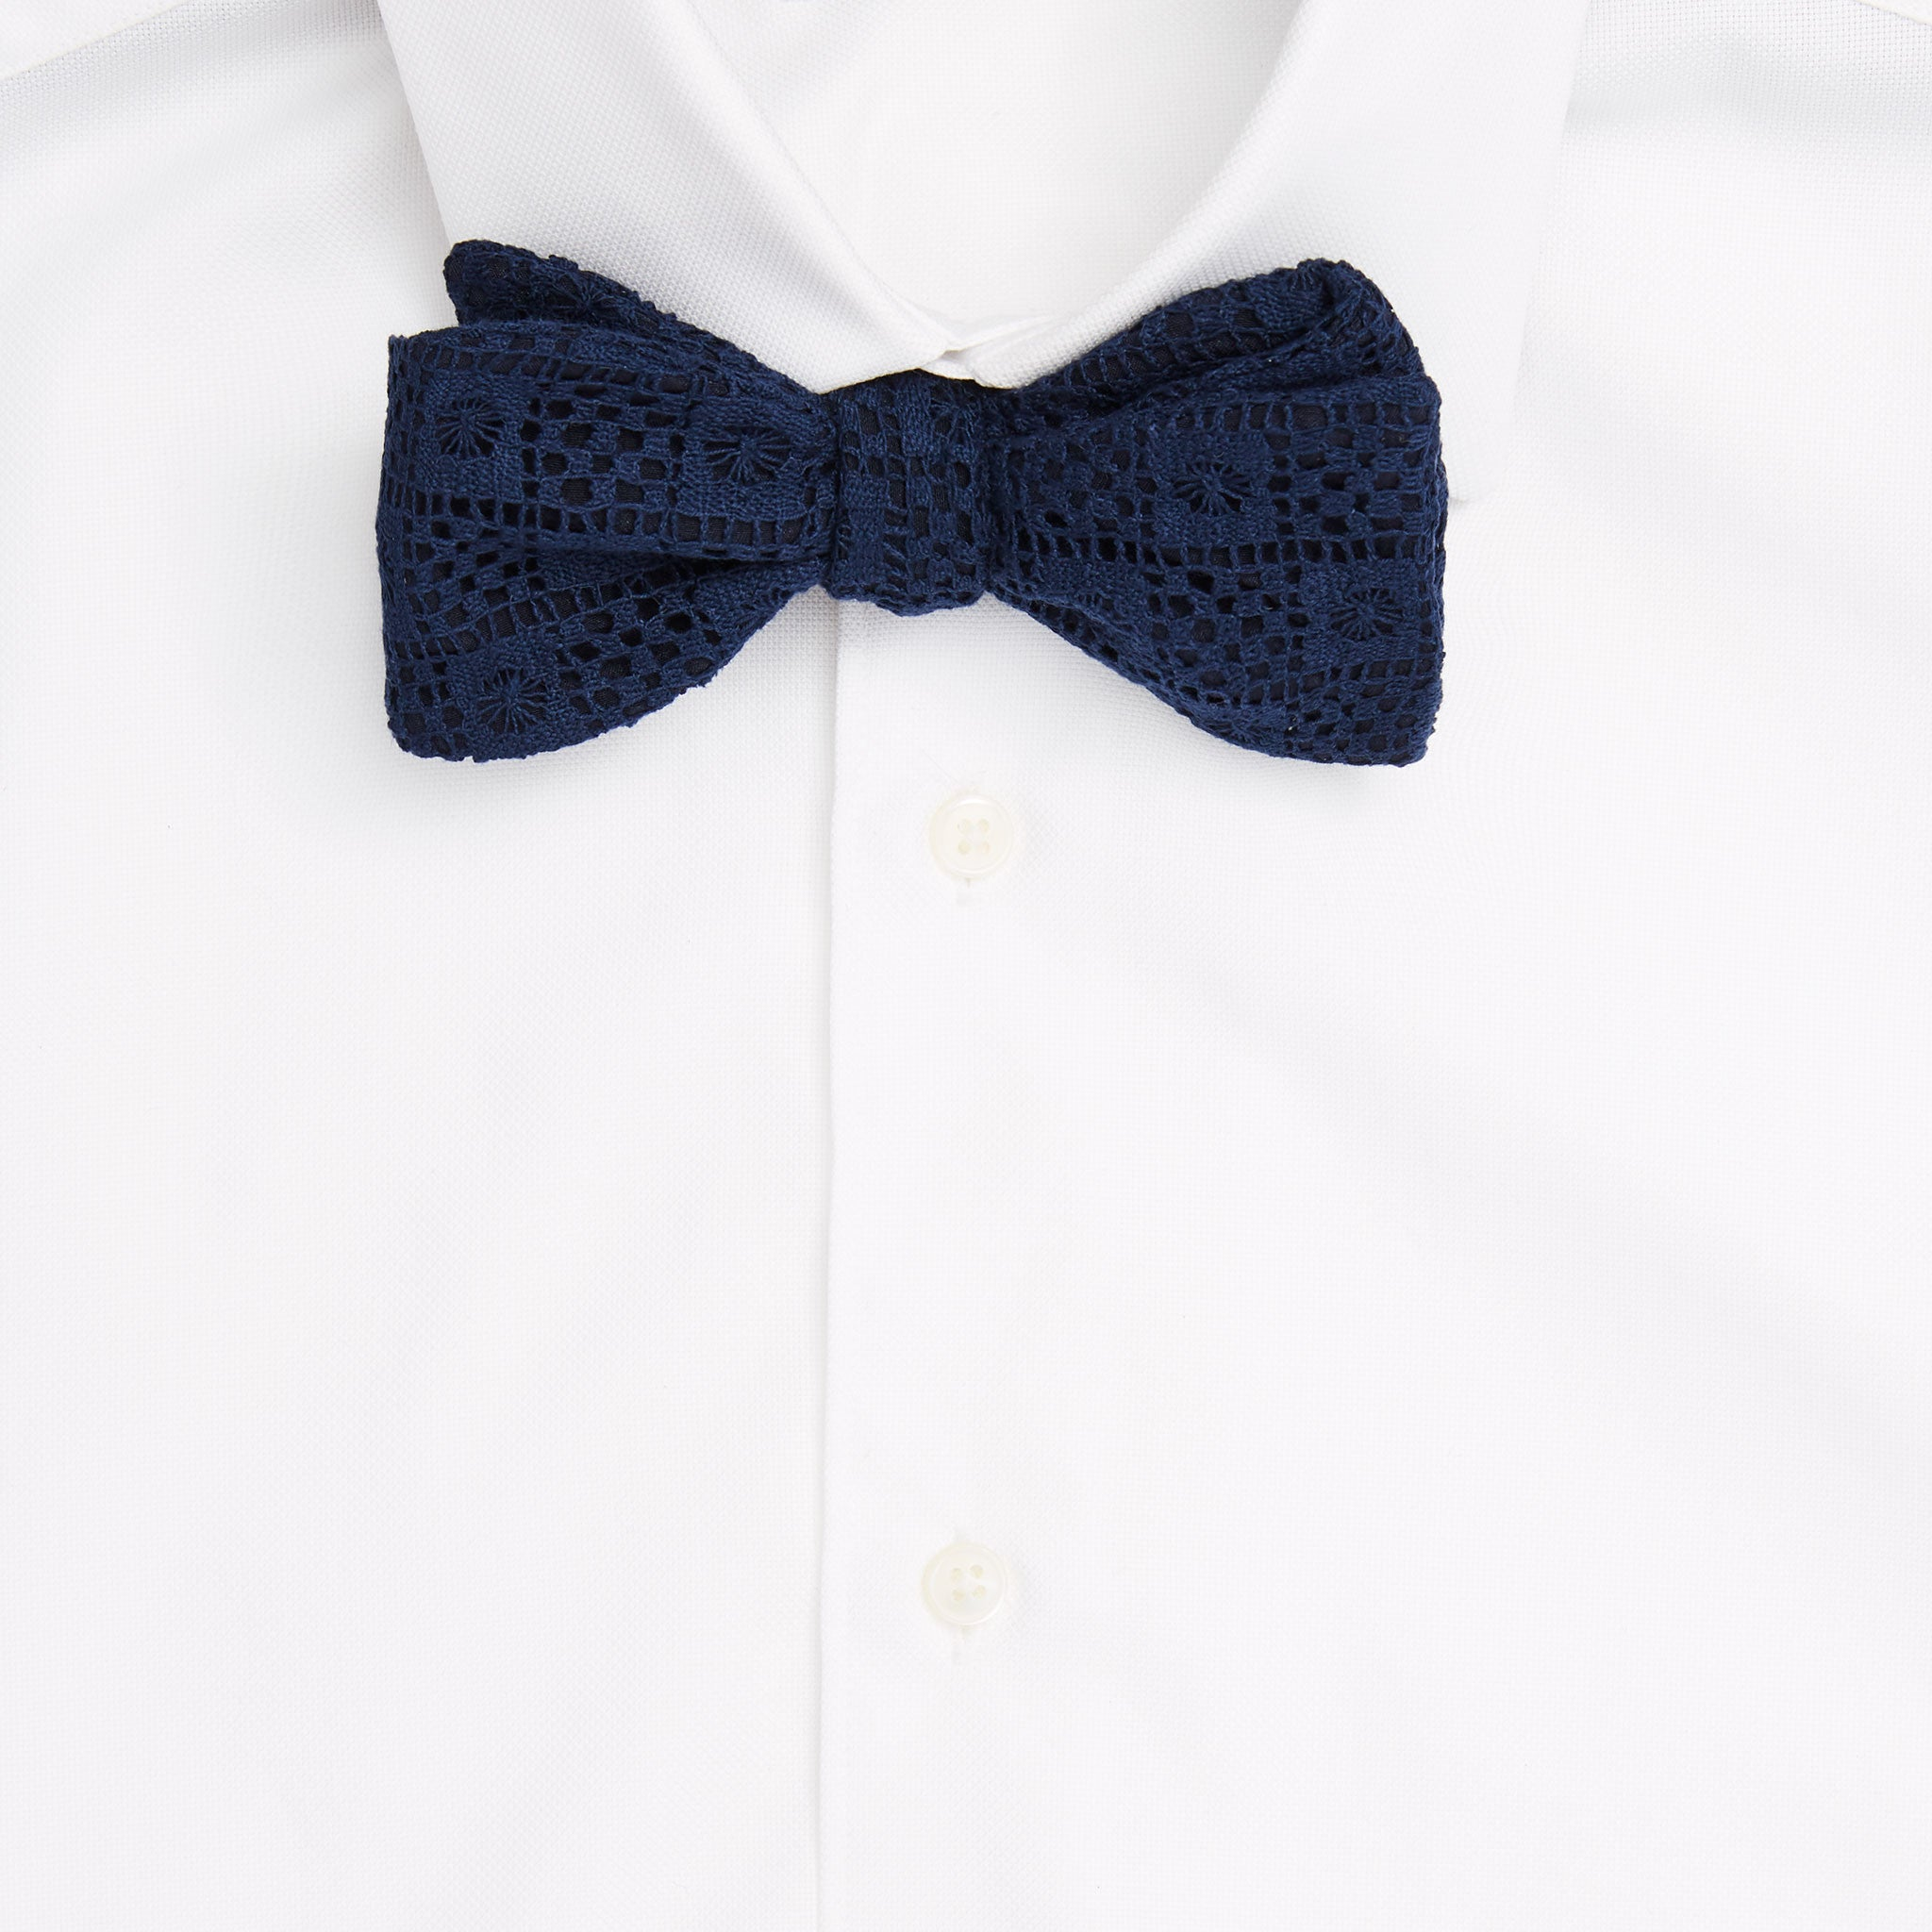 Square Knot Lace Self-Tie Bow Tie